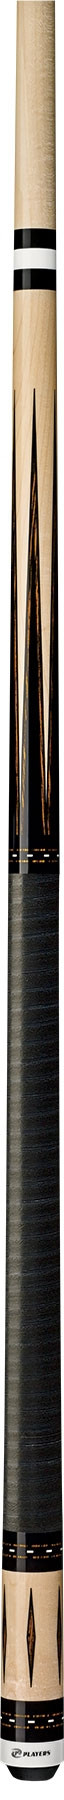 Players G-4121 Natural Maple Pool Cue Stick